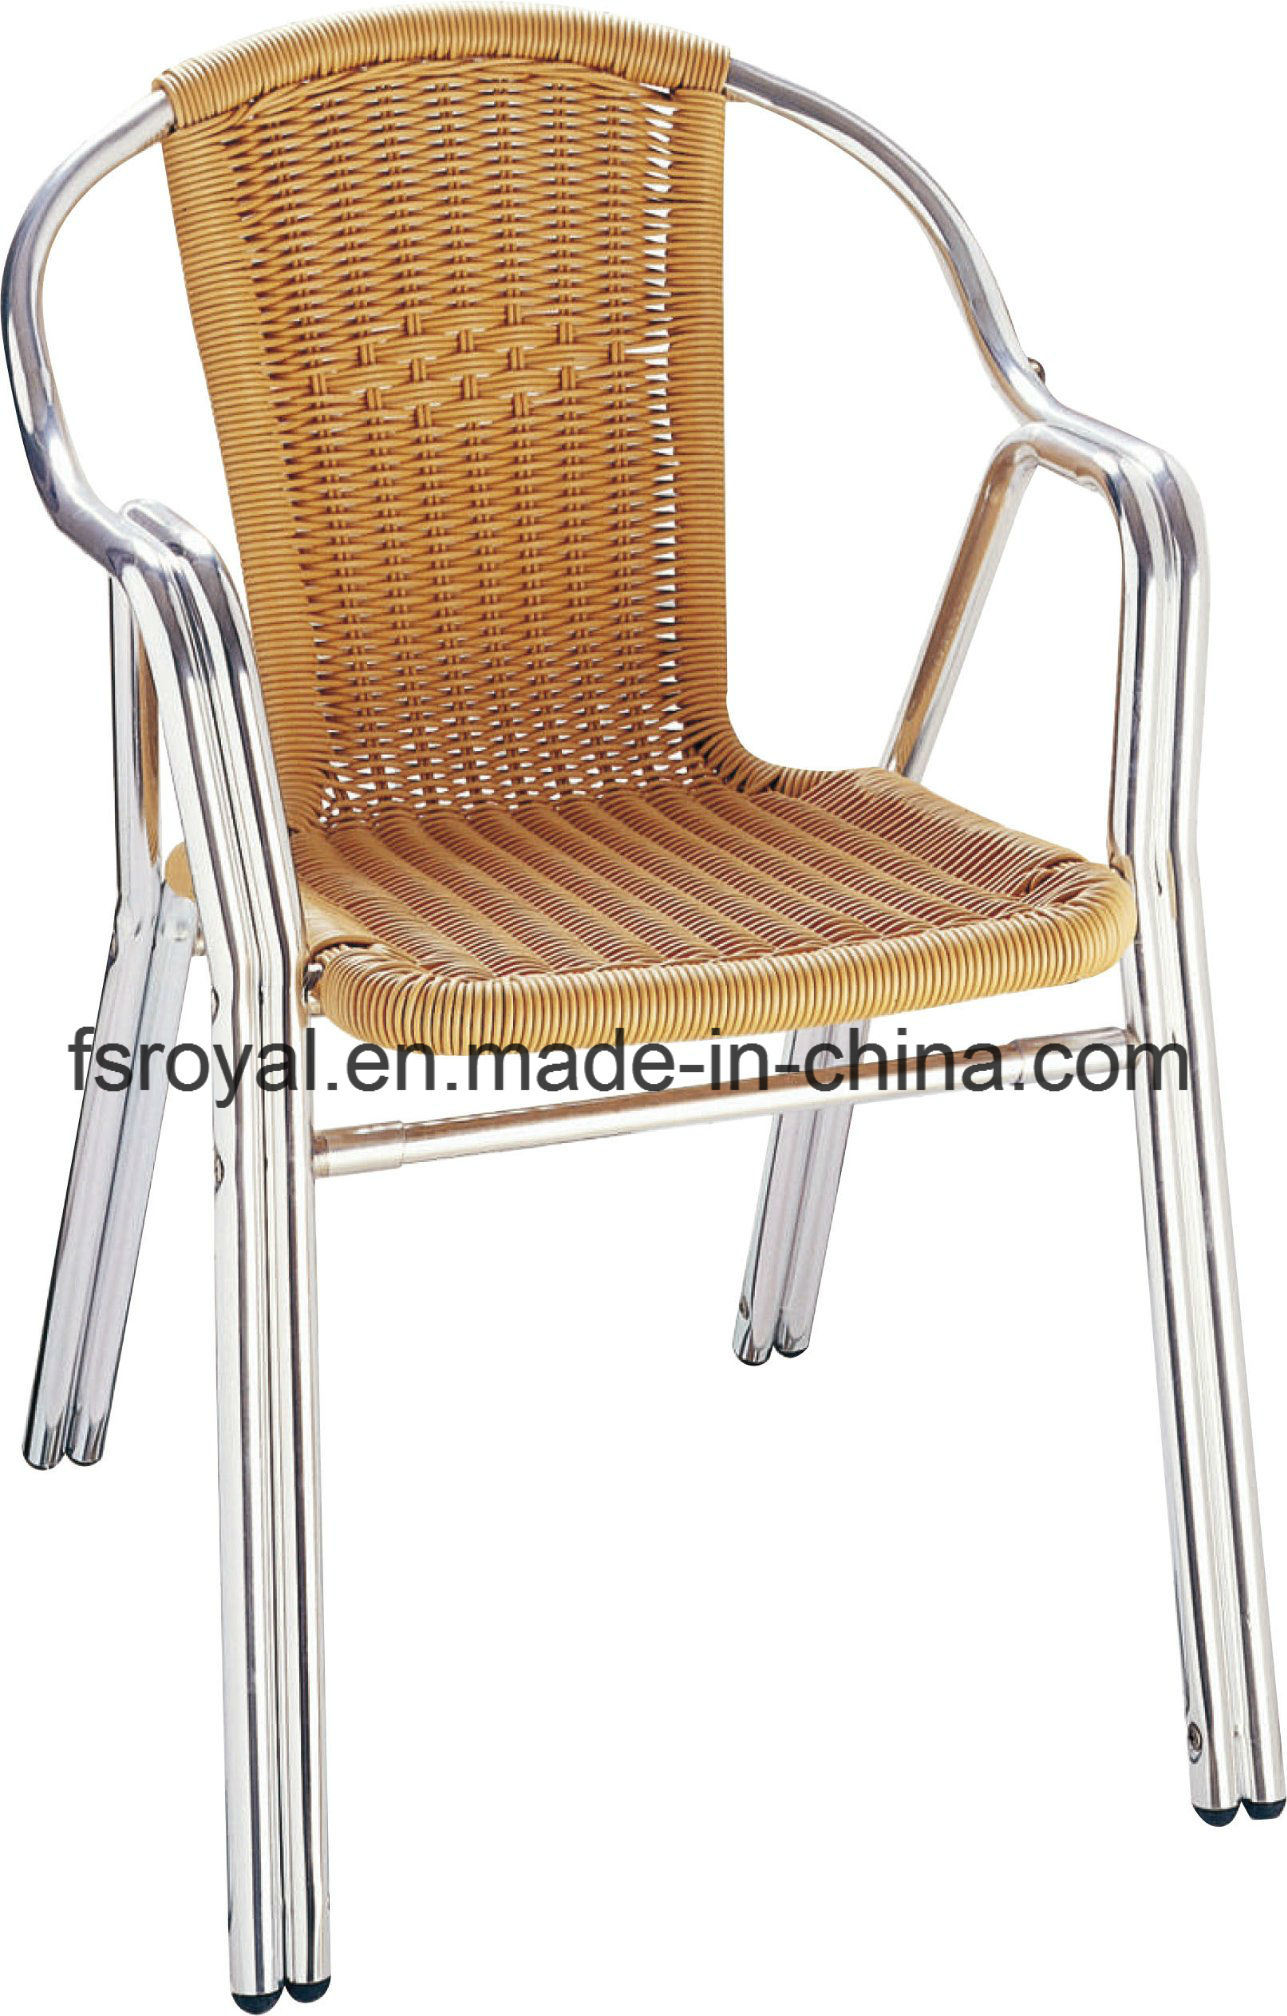 [Hot Item] Commercial Outdoor Restaurant Chairs Aluminium Anodized Rattan  Wicker Dining Chairs